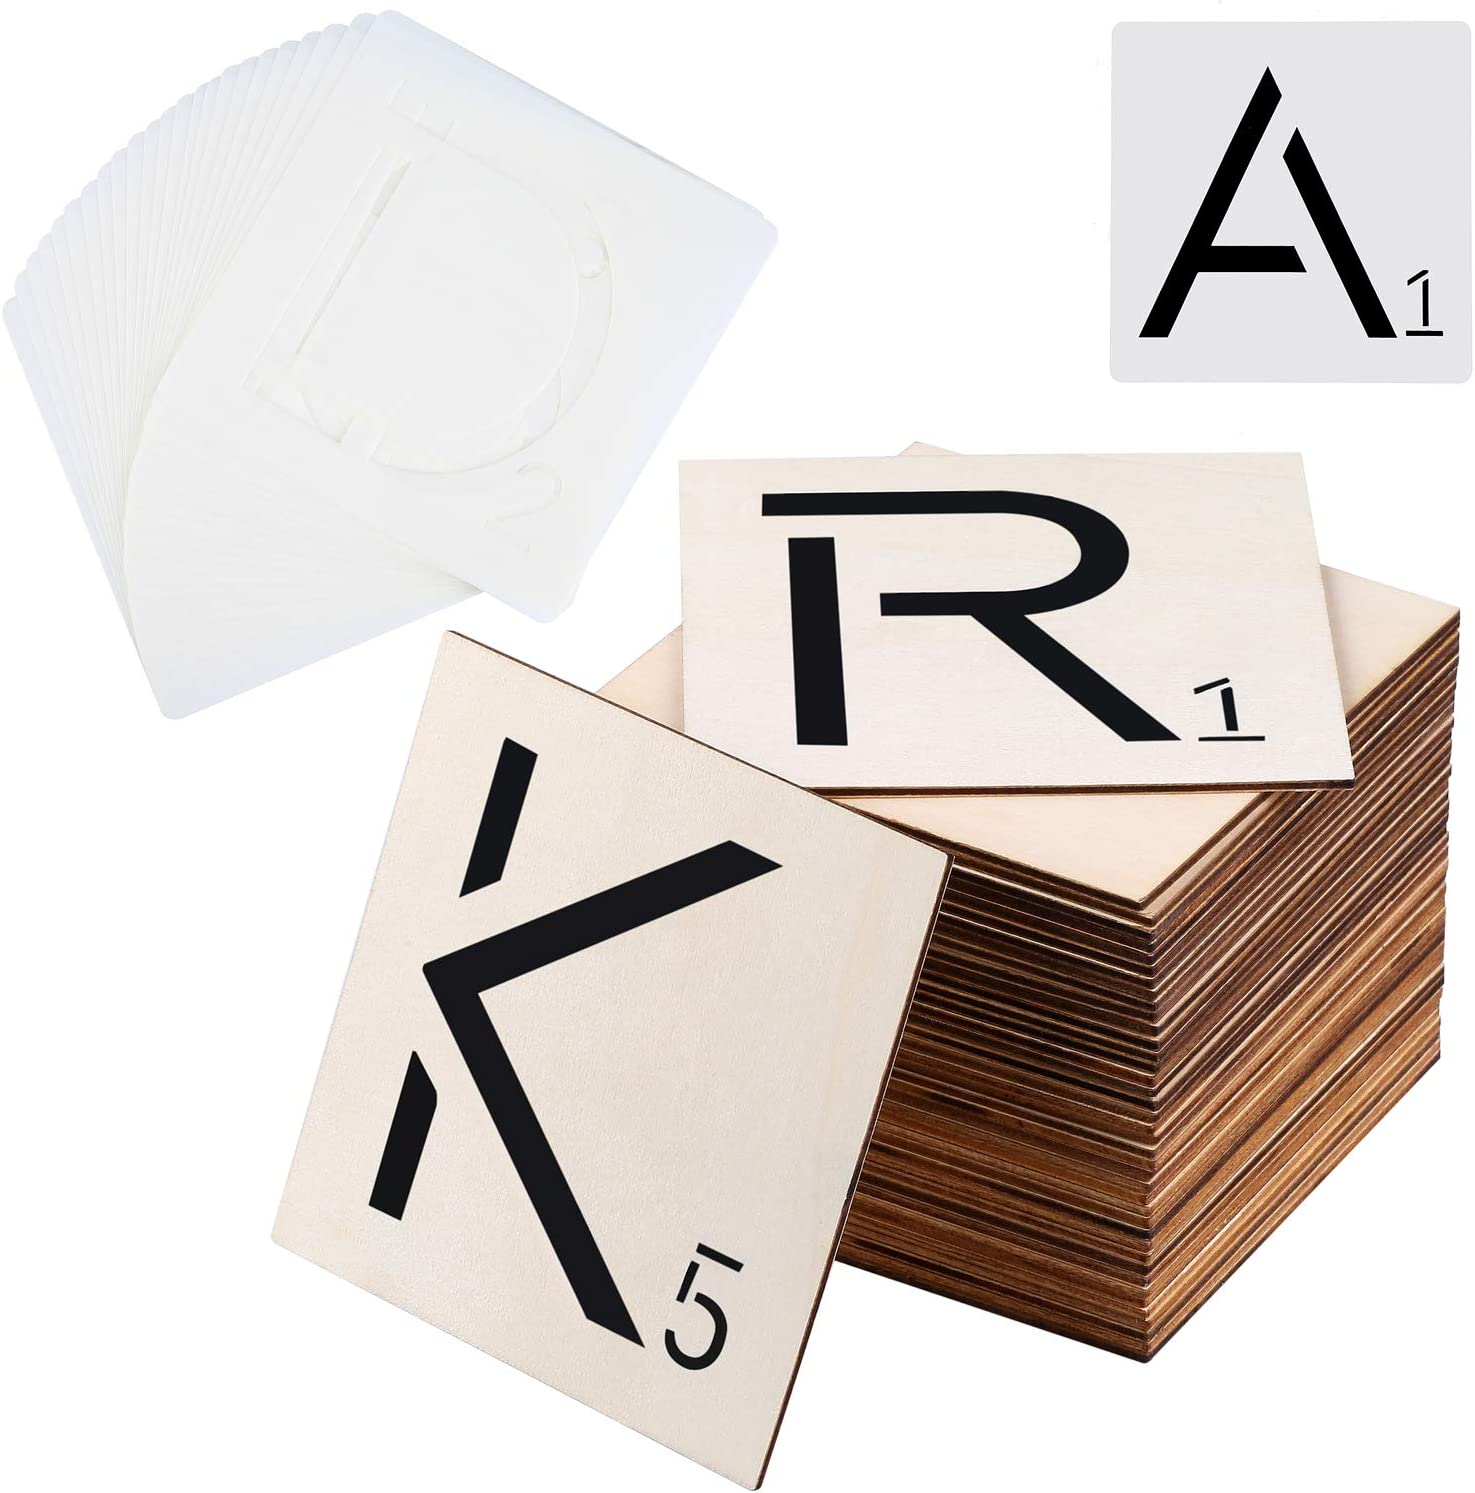 Ruisita 80 Pieces 5 x 5 Inch Unfinished Blank Wood Pieces with 26 Pieces Letters Stencils for Home Décor, DIY Projects